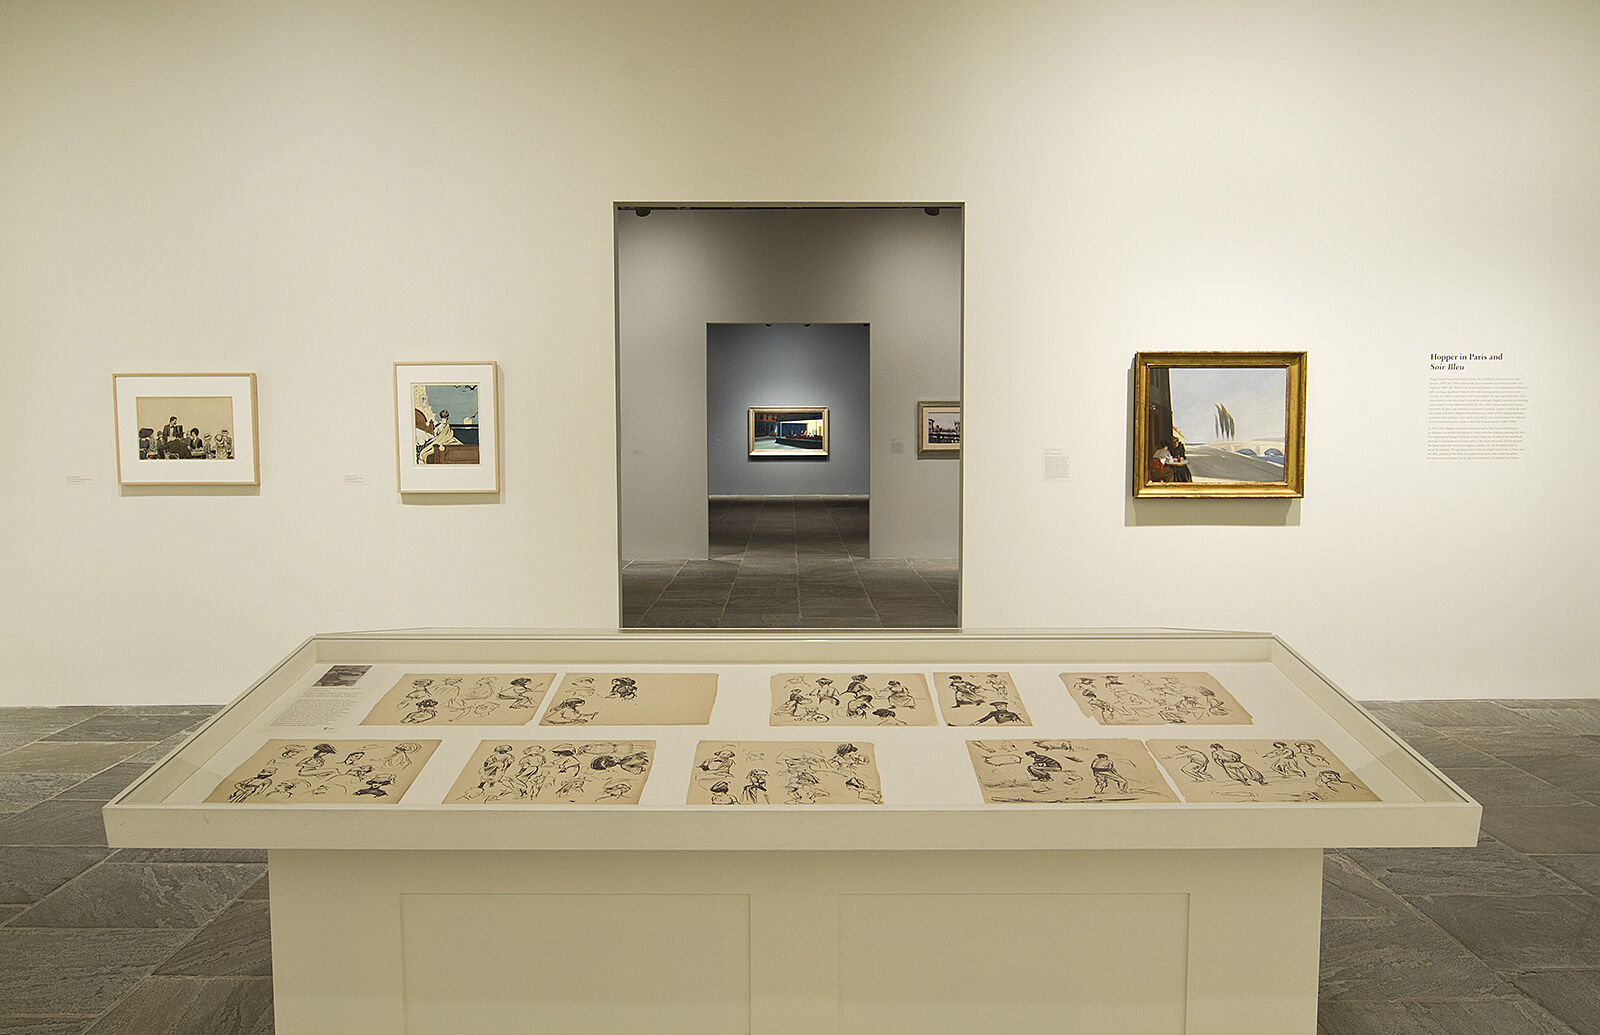 Sketches displayed in cases with paintings just beyond them.